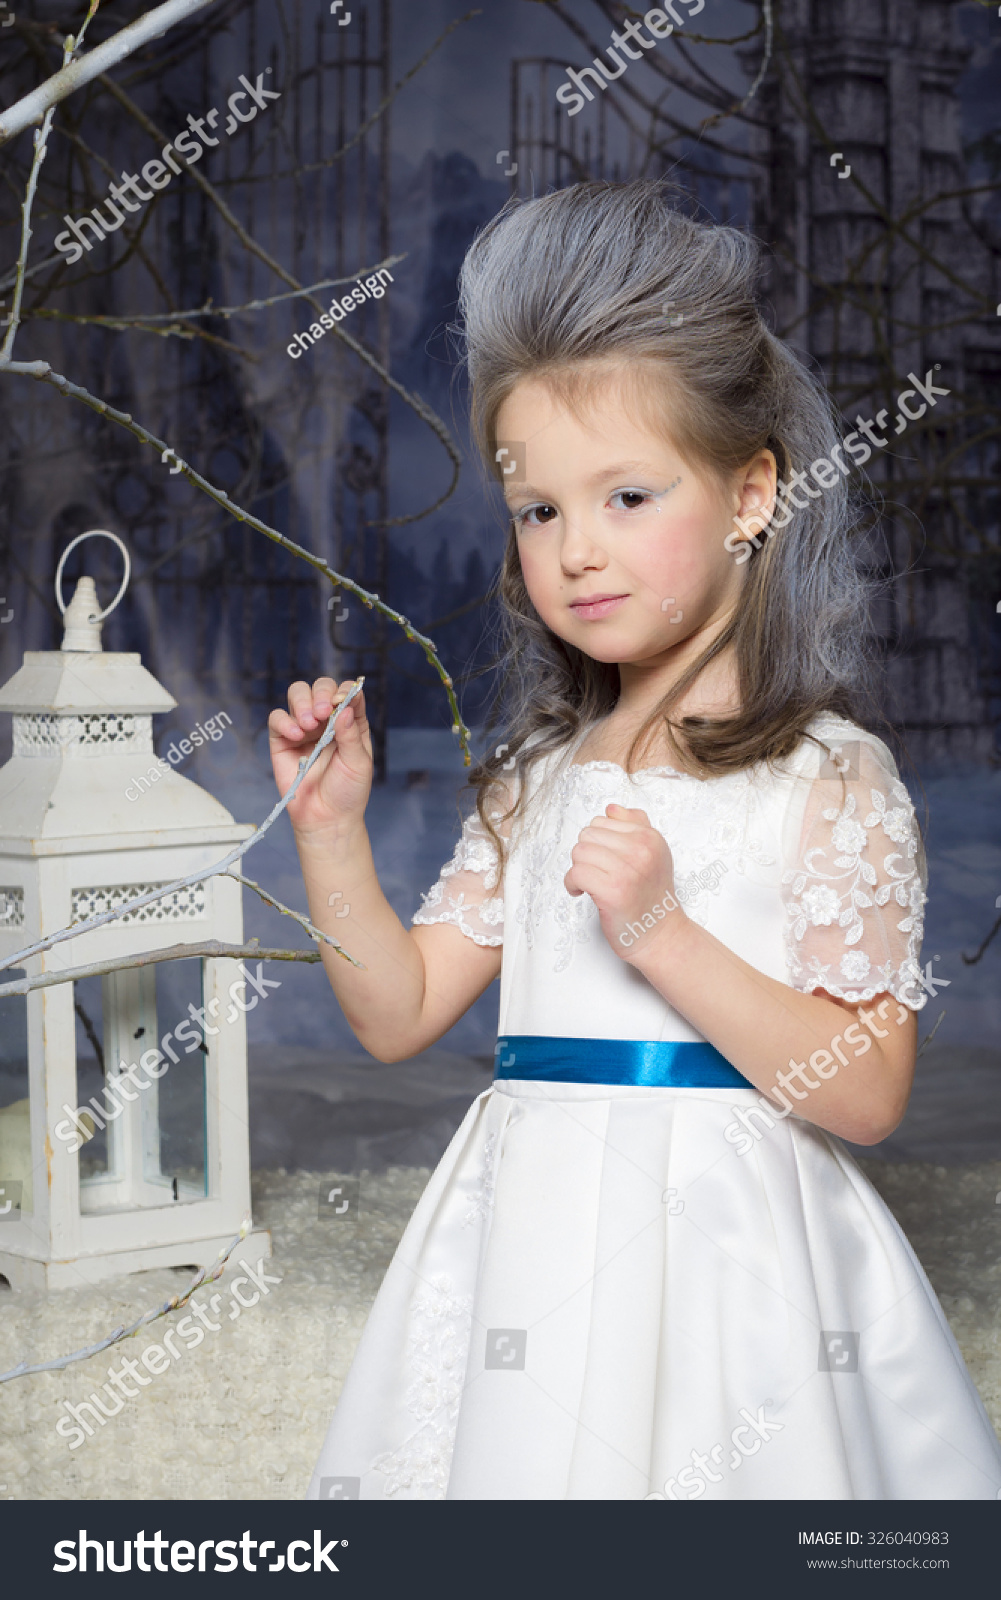 Snow princess queen beautiful little girl with a winter makeover in a white